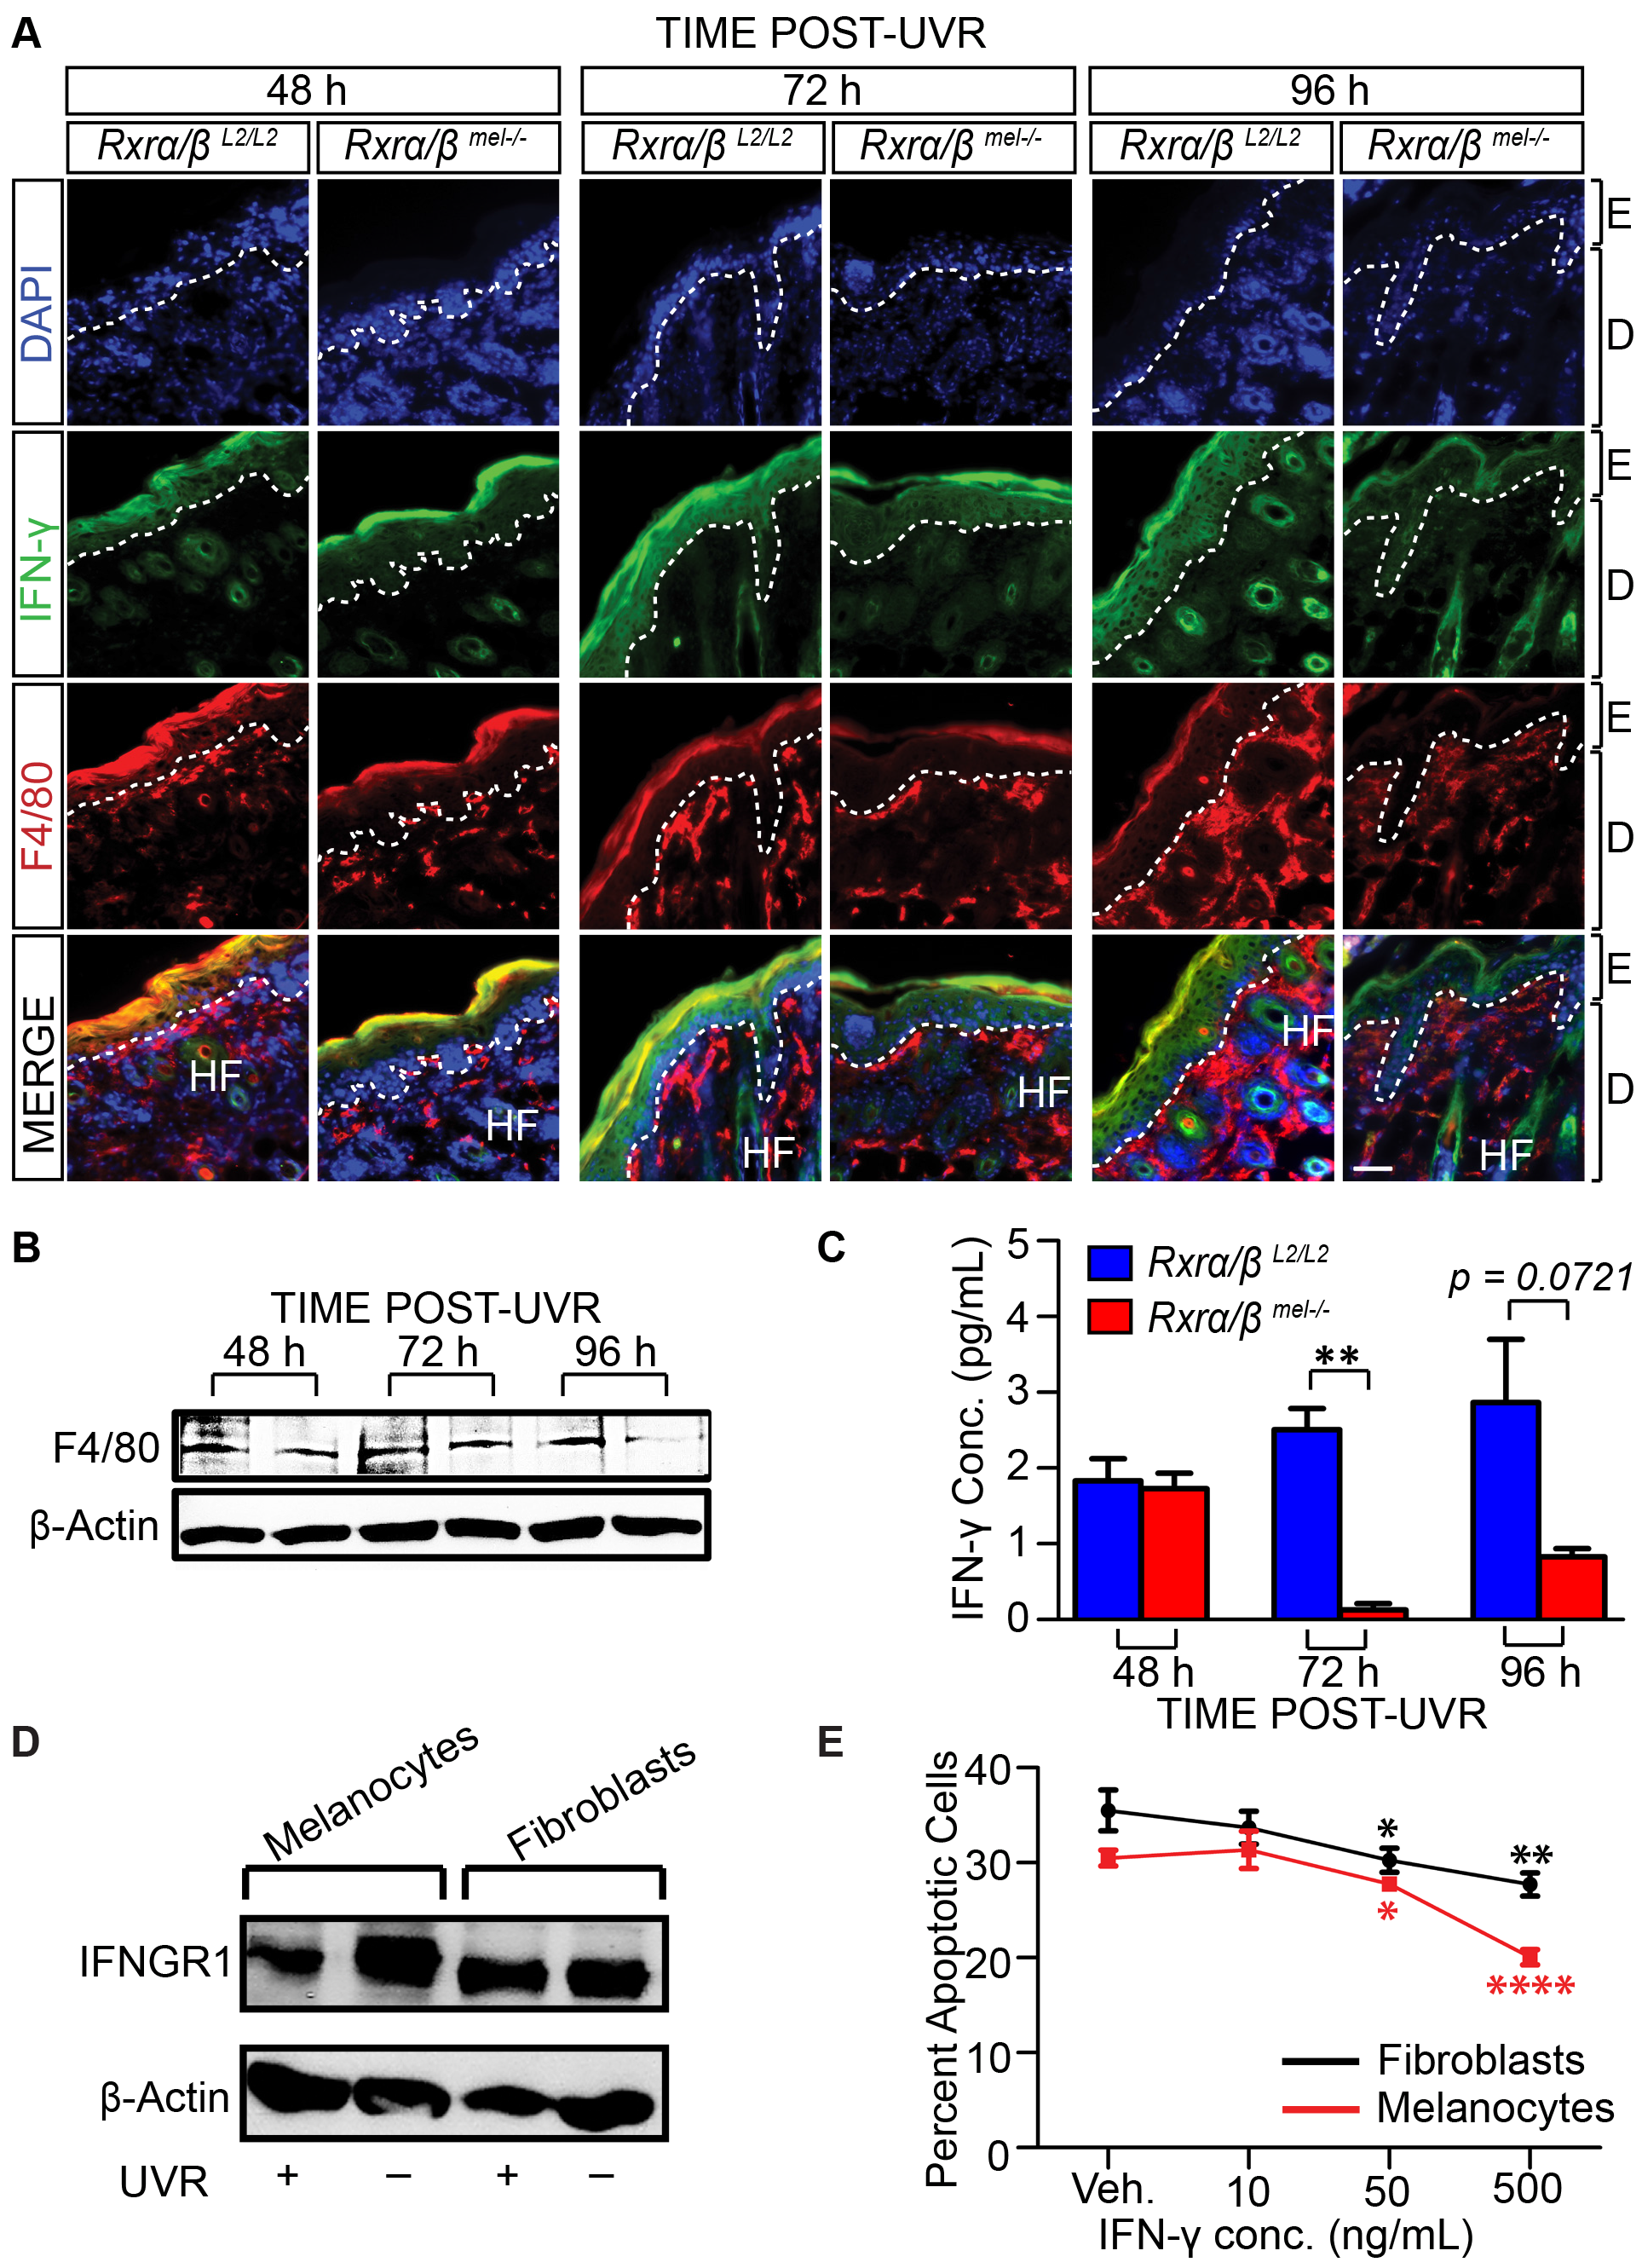 Loss of melanocytic RXRs α and β results in reduced monocyte/macrophage infiltration and corresponding reduced interferon-γ (IFN- γ) expression following UV radiation.